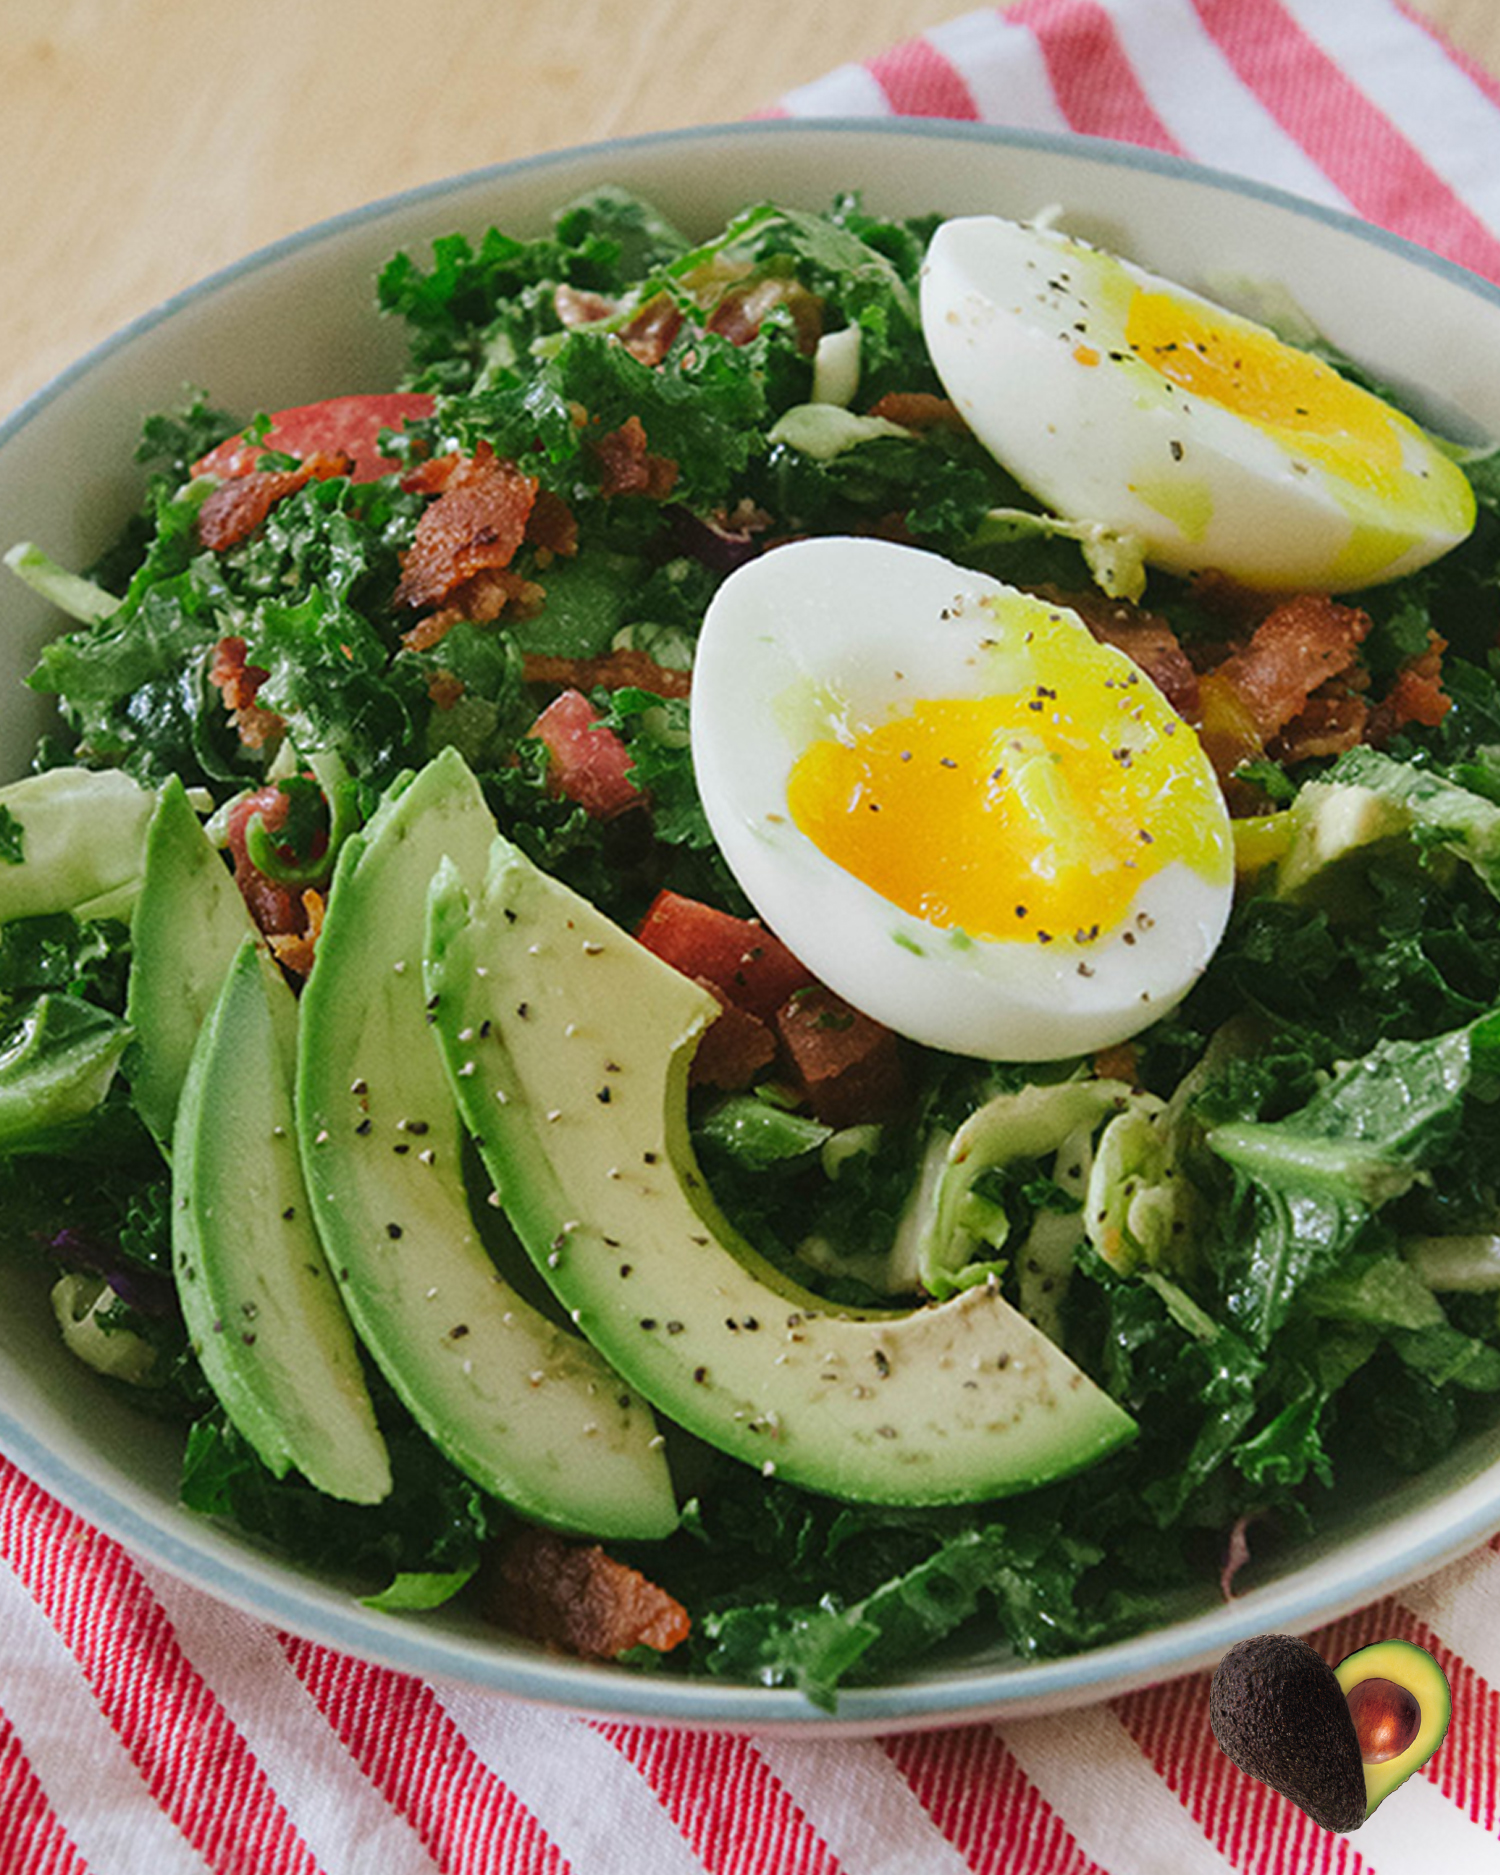 AVO_Dec_Breakfast_Salad_Resize_1500x1875 copy.jpg